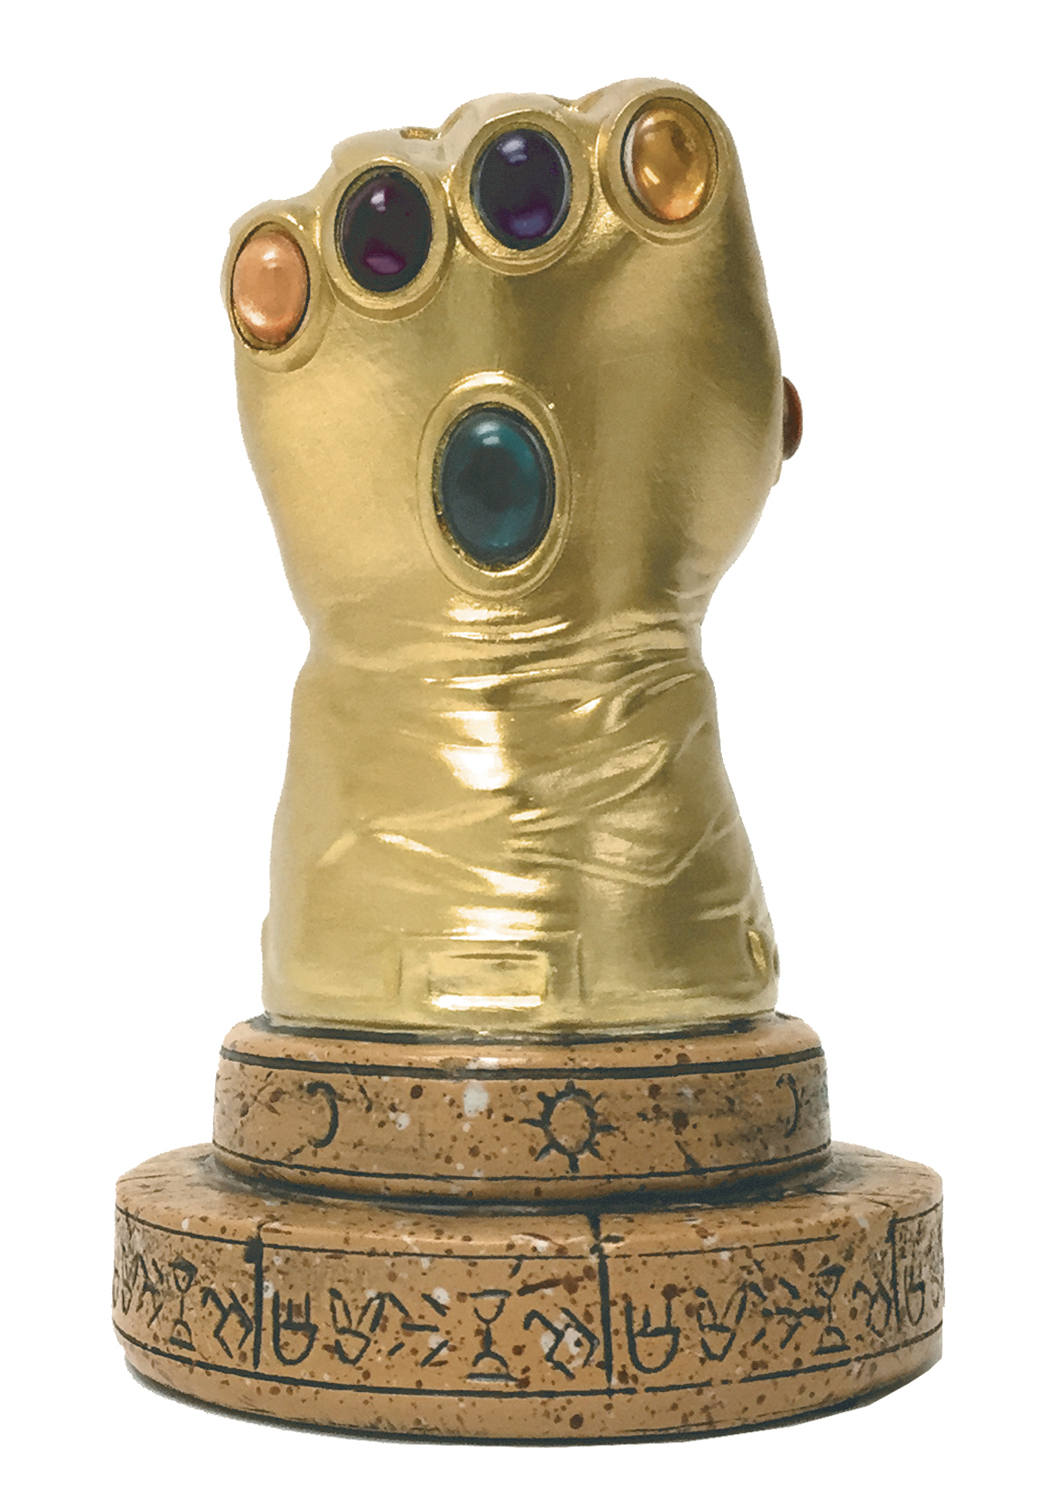 MARVEL COMICS INFINITY GAUNTLET PX DESK MONUMENT (O/A)